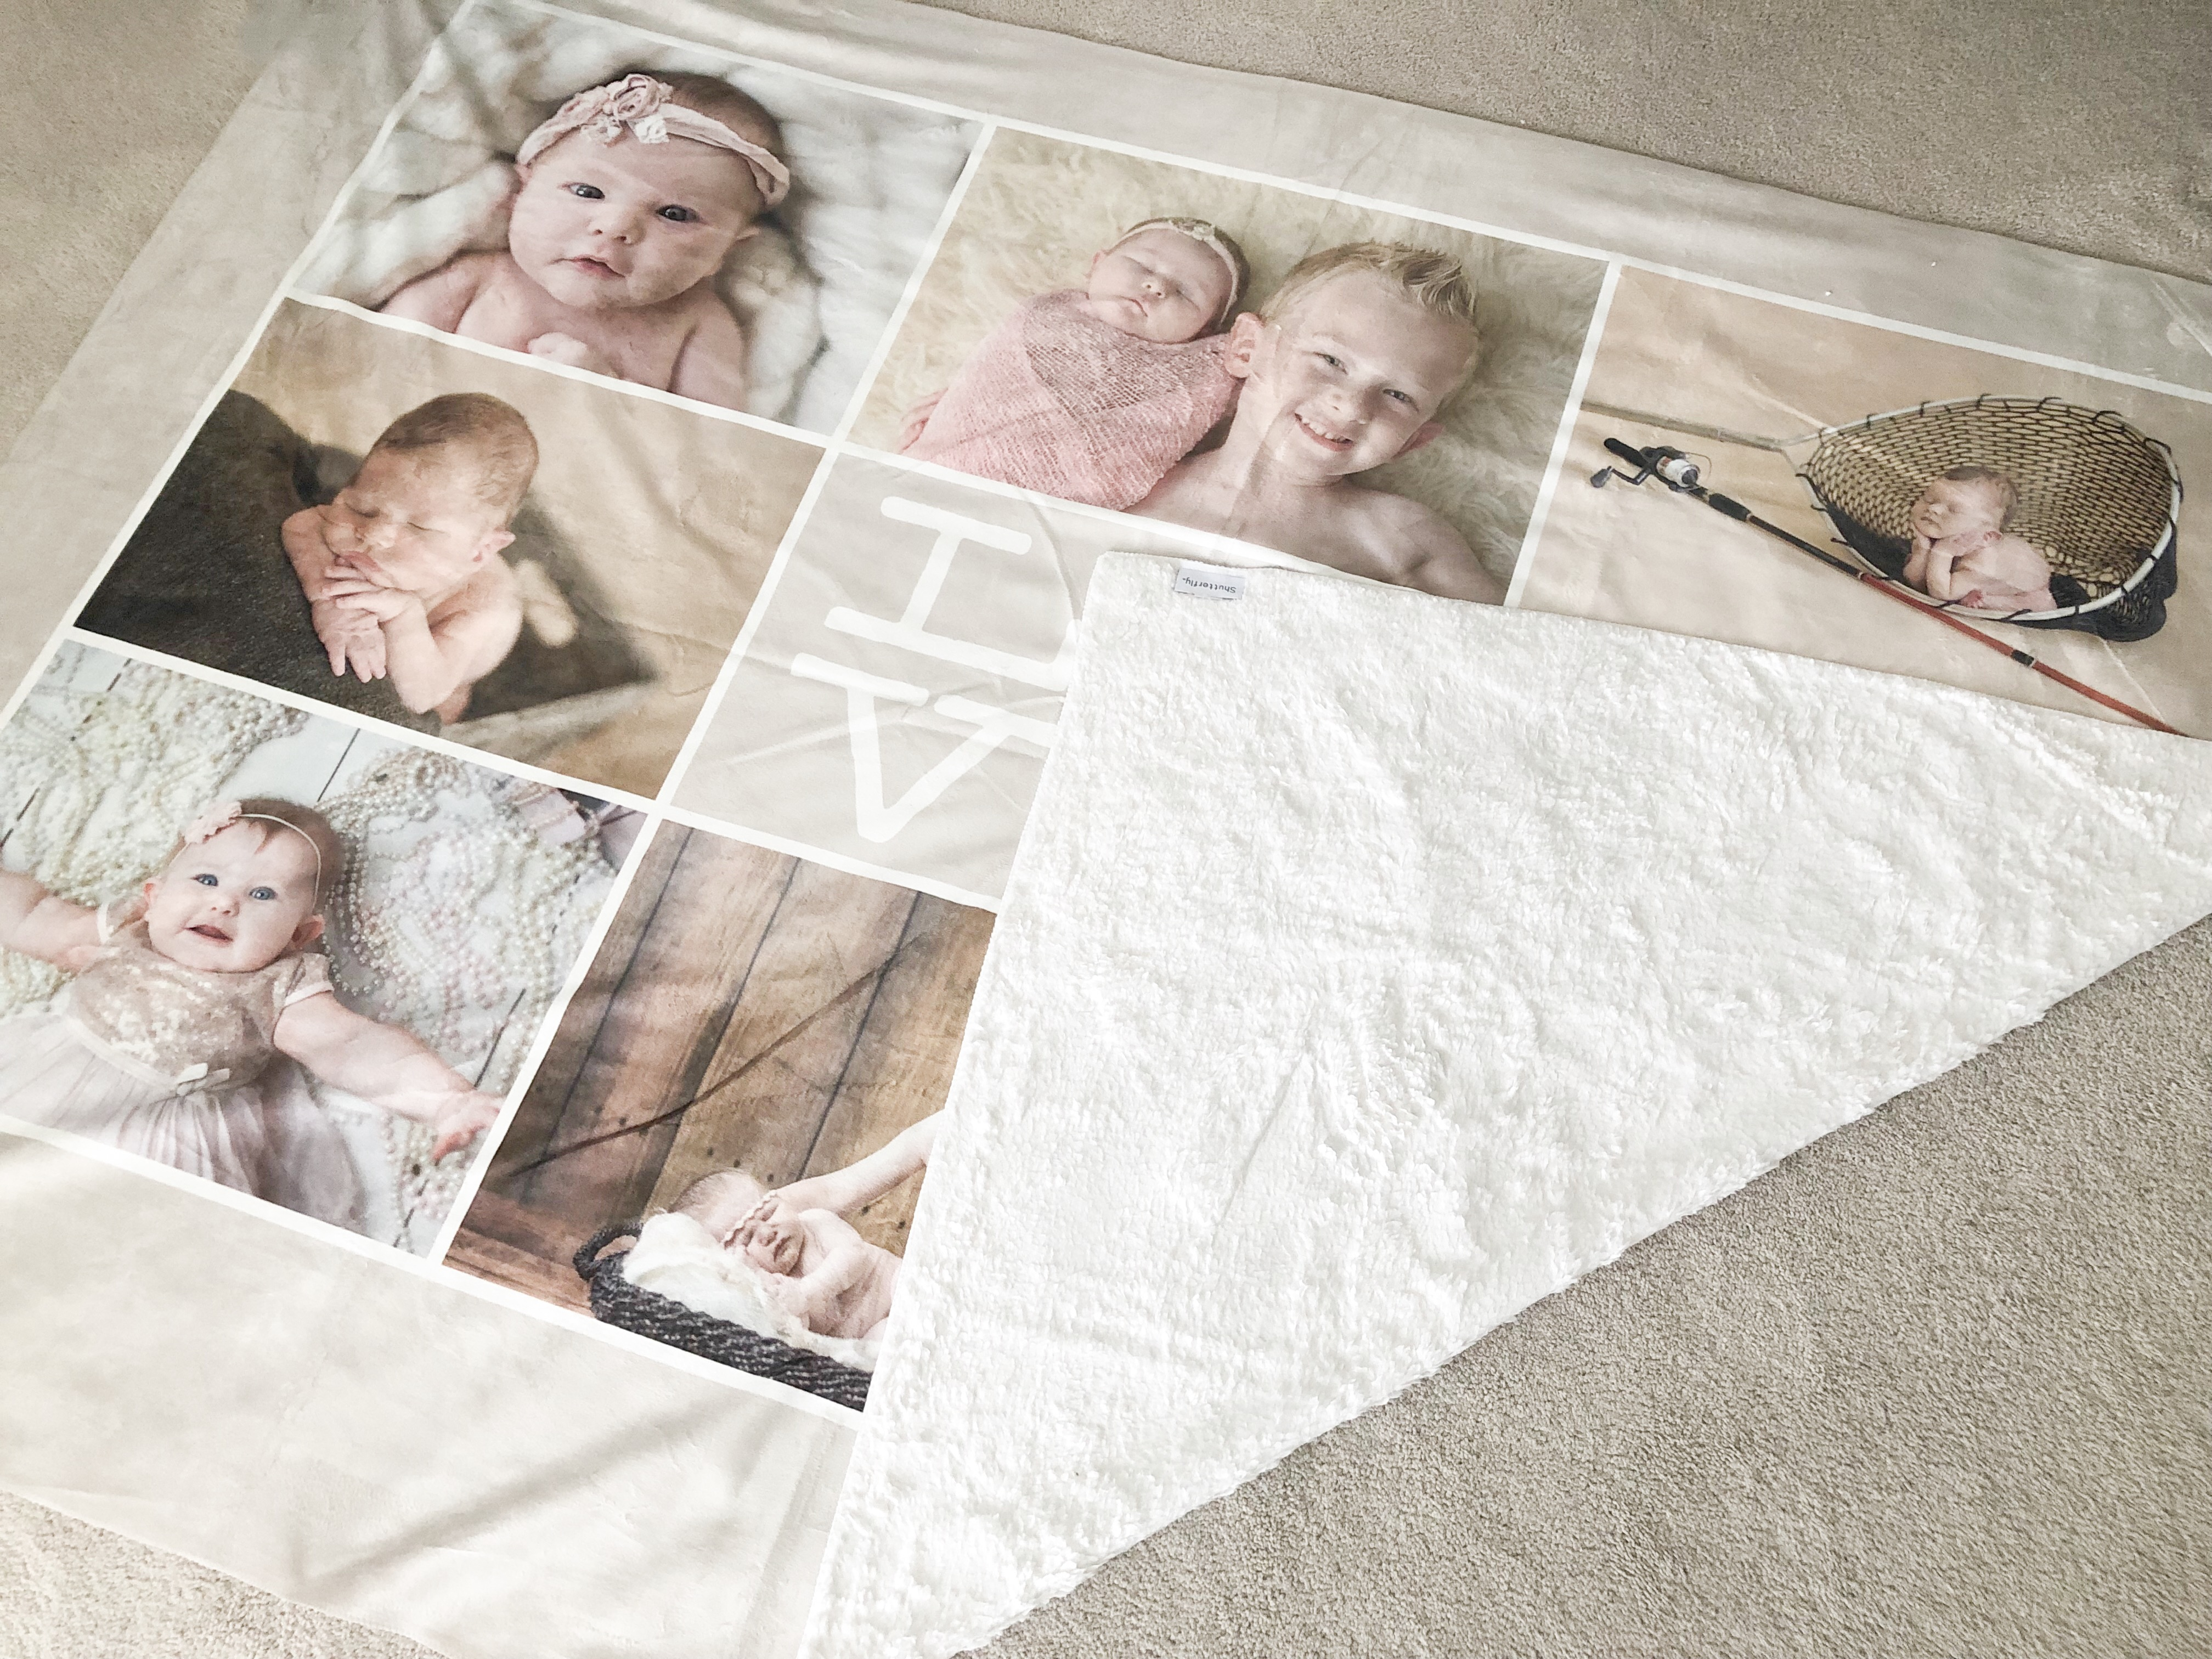 Custom Blanket from Shutterfly on livin life with style